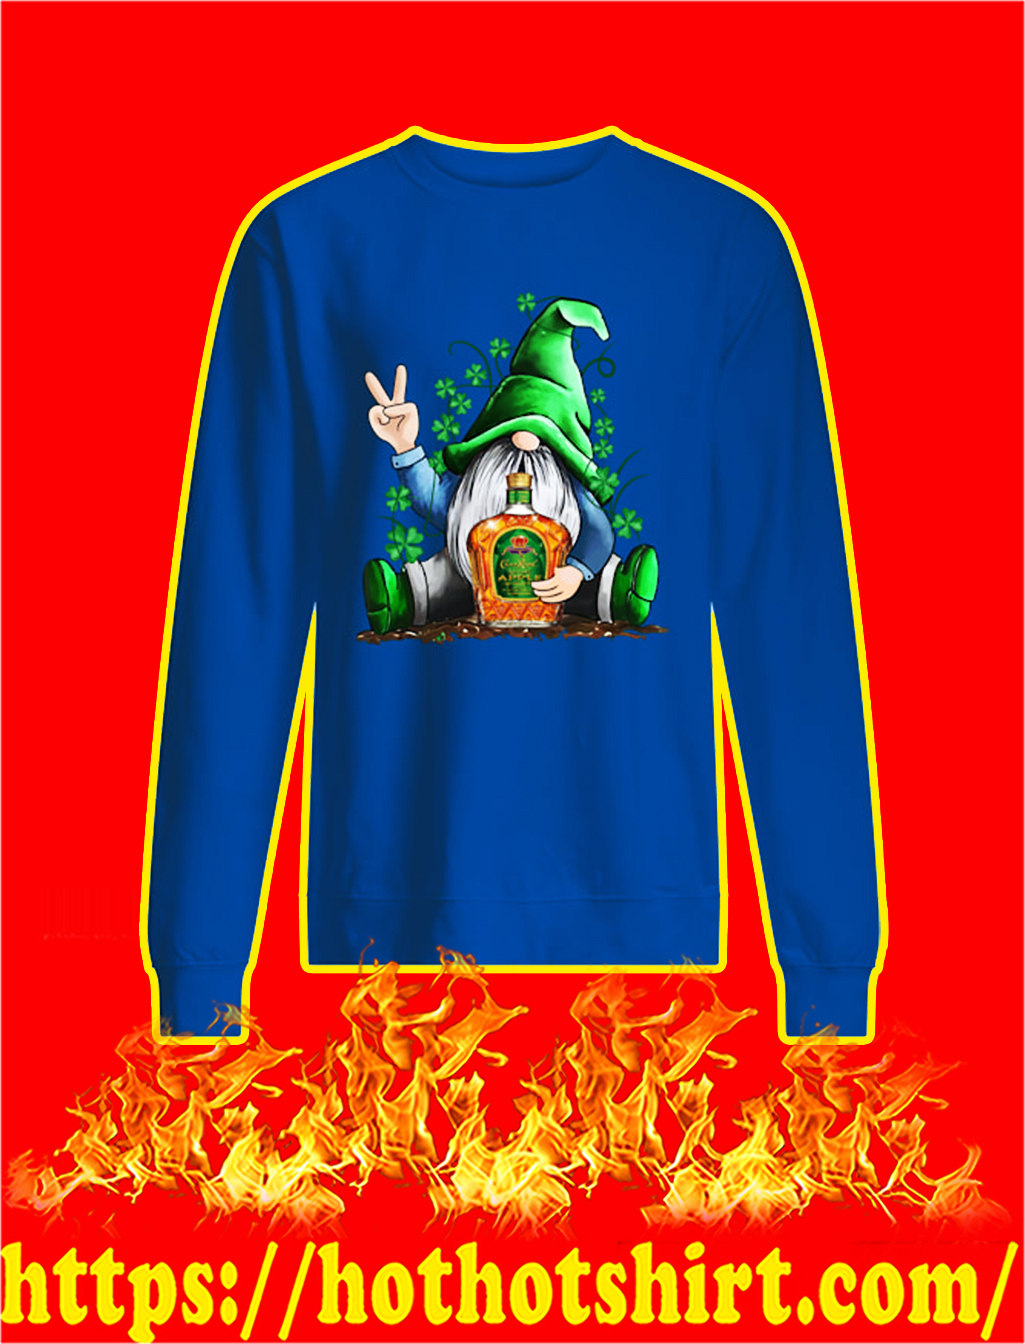 Irish Gnome Hug Crown Royal St Patrick's Day sweatshirt